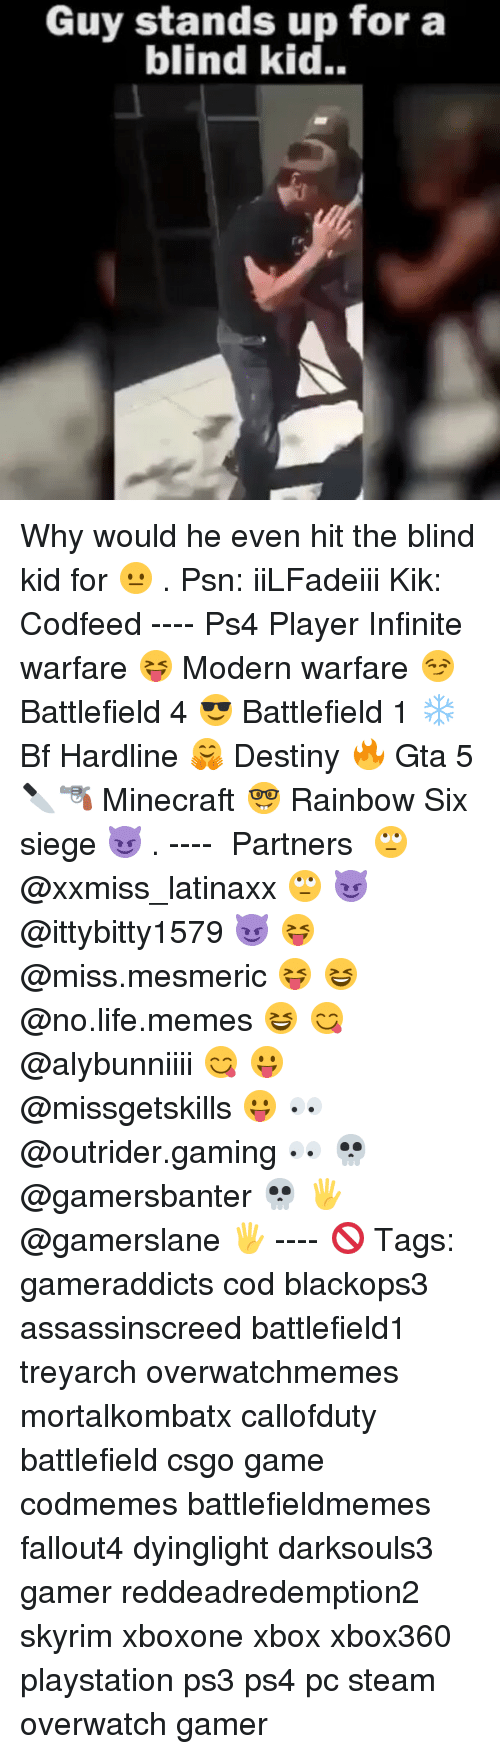 Battlefield 1: Guy stands up for a  blind kid. Why would he even hit the blind kid for 😐 . Psn: iiLFadeiii Kik: Codfeed ---- Ps4 Player Infinite warfare 😝 Modern warfare 😏 Battlefield 4 😎 Battlefield 1 ❄ Bf Hardline 🤗 Destiny 🔥 Gta 5 🔪🔫 Minecraft 🤓 Rainbow Six siege 😈 . ---- ♞ Partners 🙄 @xxmiss_latinaxx 🙄 😈 @ittybitty1579 😈 😝 @miss.mesmeric 😝 😆 @no.life.memes 😆 😋 @alybunniiii 😋 😛 @missgetskills 😛 👀 @outrider.gaming 👀 💀 @gamersbanter 💀 🖐 @gamerslane 🖐 ---- 🚫 Tags: gameraddicts cod blackops3 assassinscreed battlefield1 treyarch overwatchmemes mortalkombatx callofduty battlefield csgo game codmemes battlefieldmemes fallout4 dyinglight darksouls3 gamer reddeadredemption2 skyrim xboxone xbox xbox360 playstation ps3 ps4 pc steam overwatch gamer